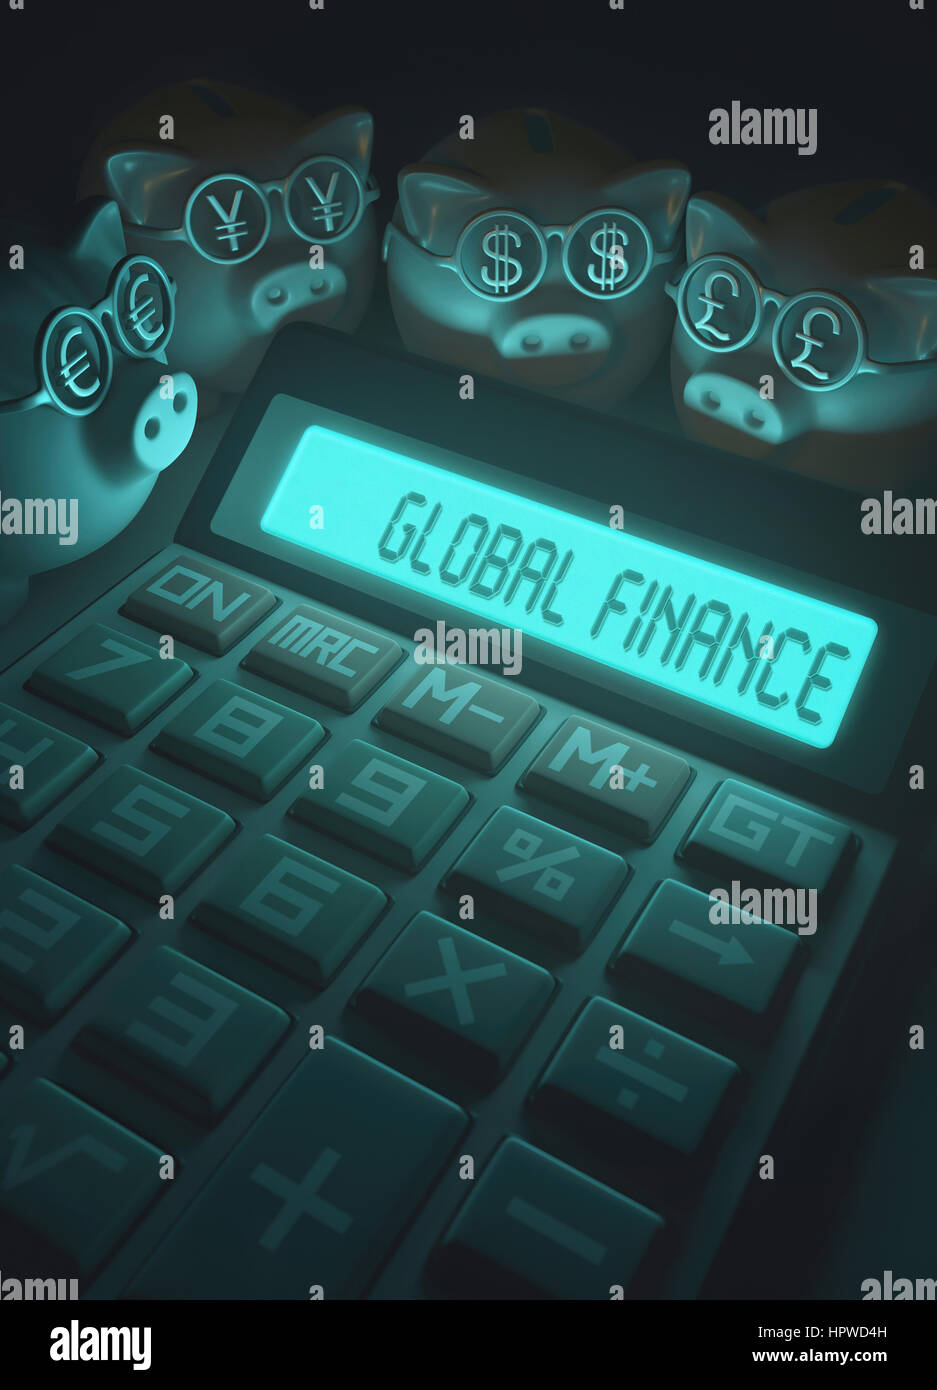 Calculator with global finance and piggy banks, illustration. - Stock Image